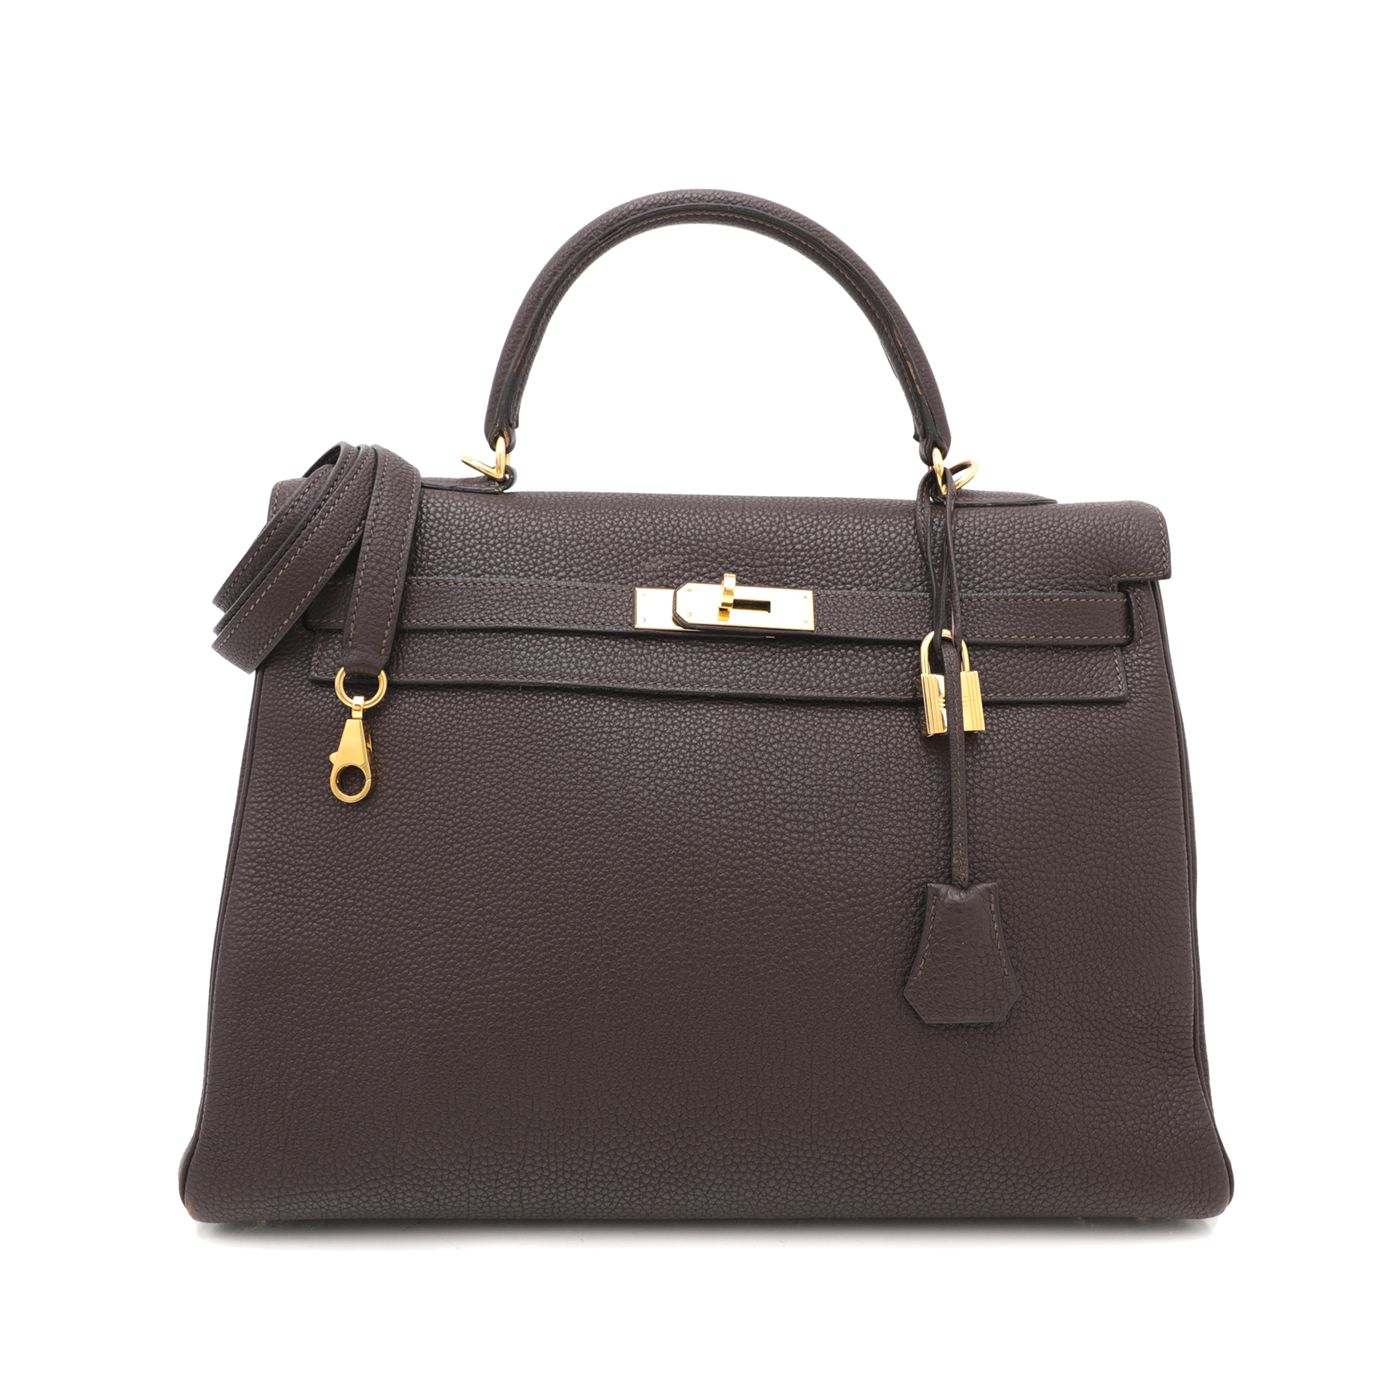 Hermes Chocolate Togo Kelly 35 Bag